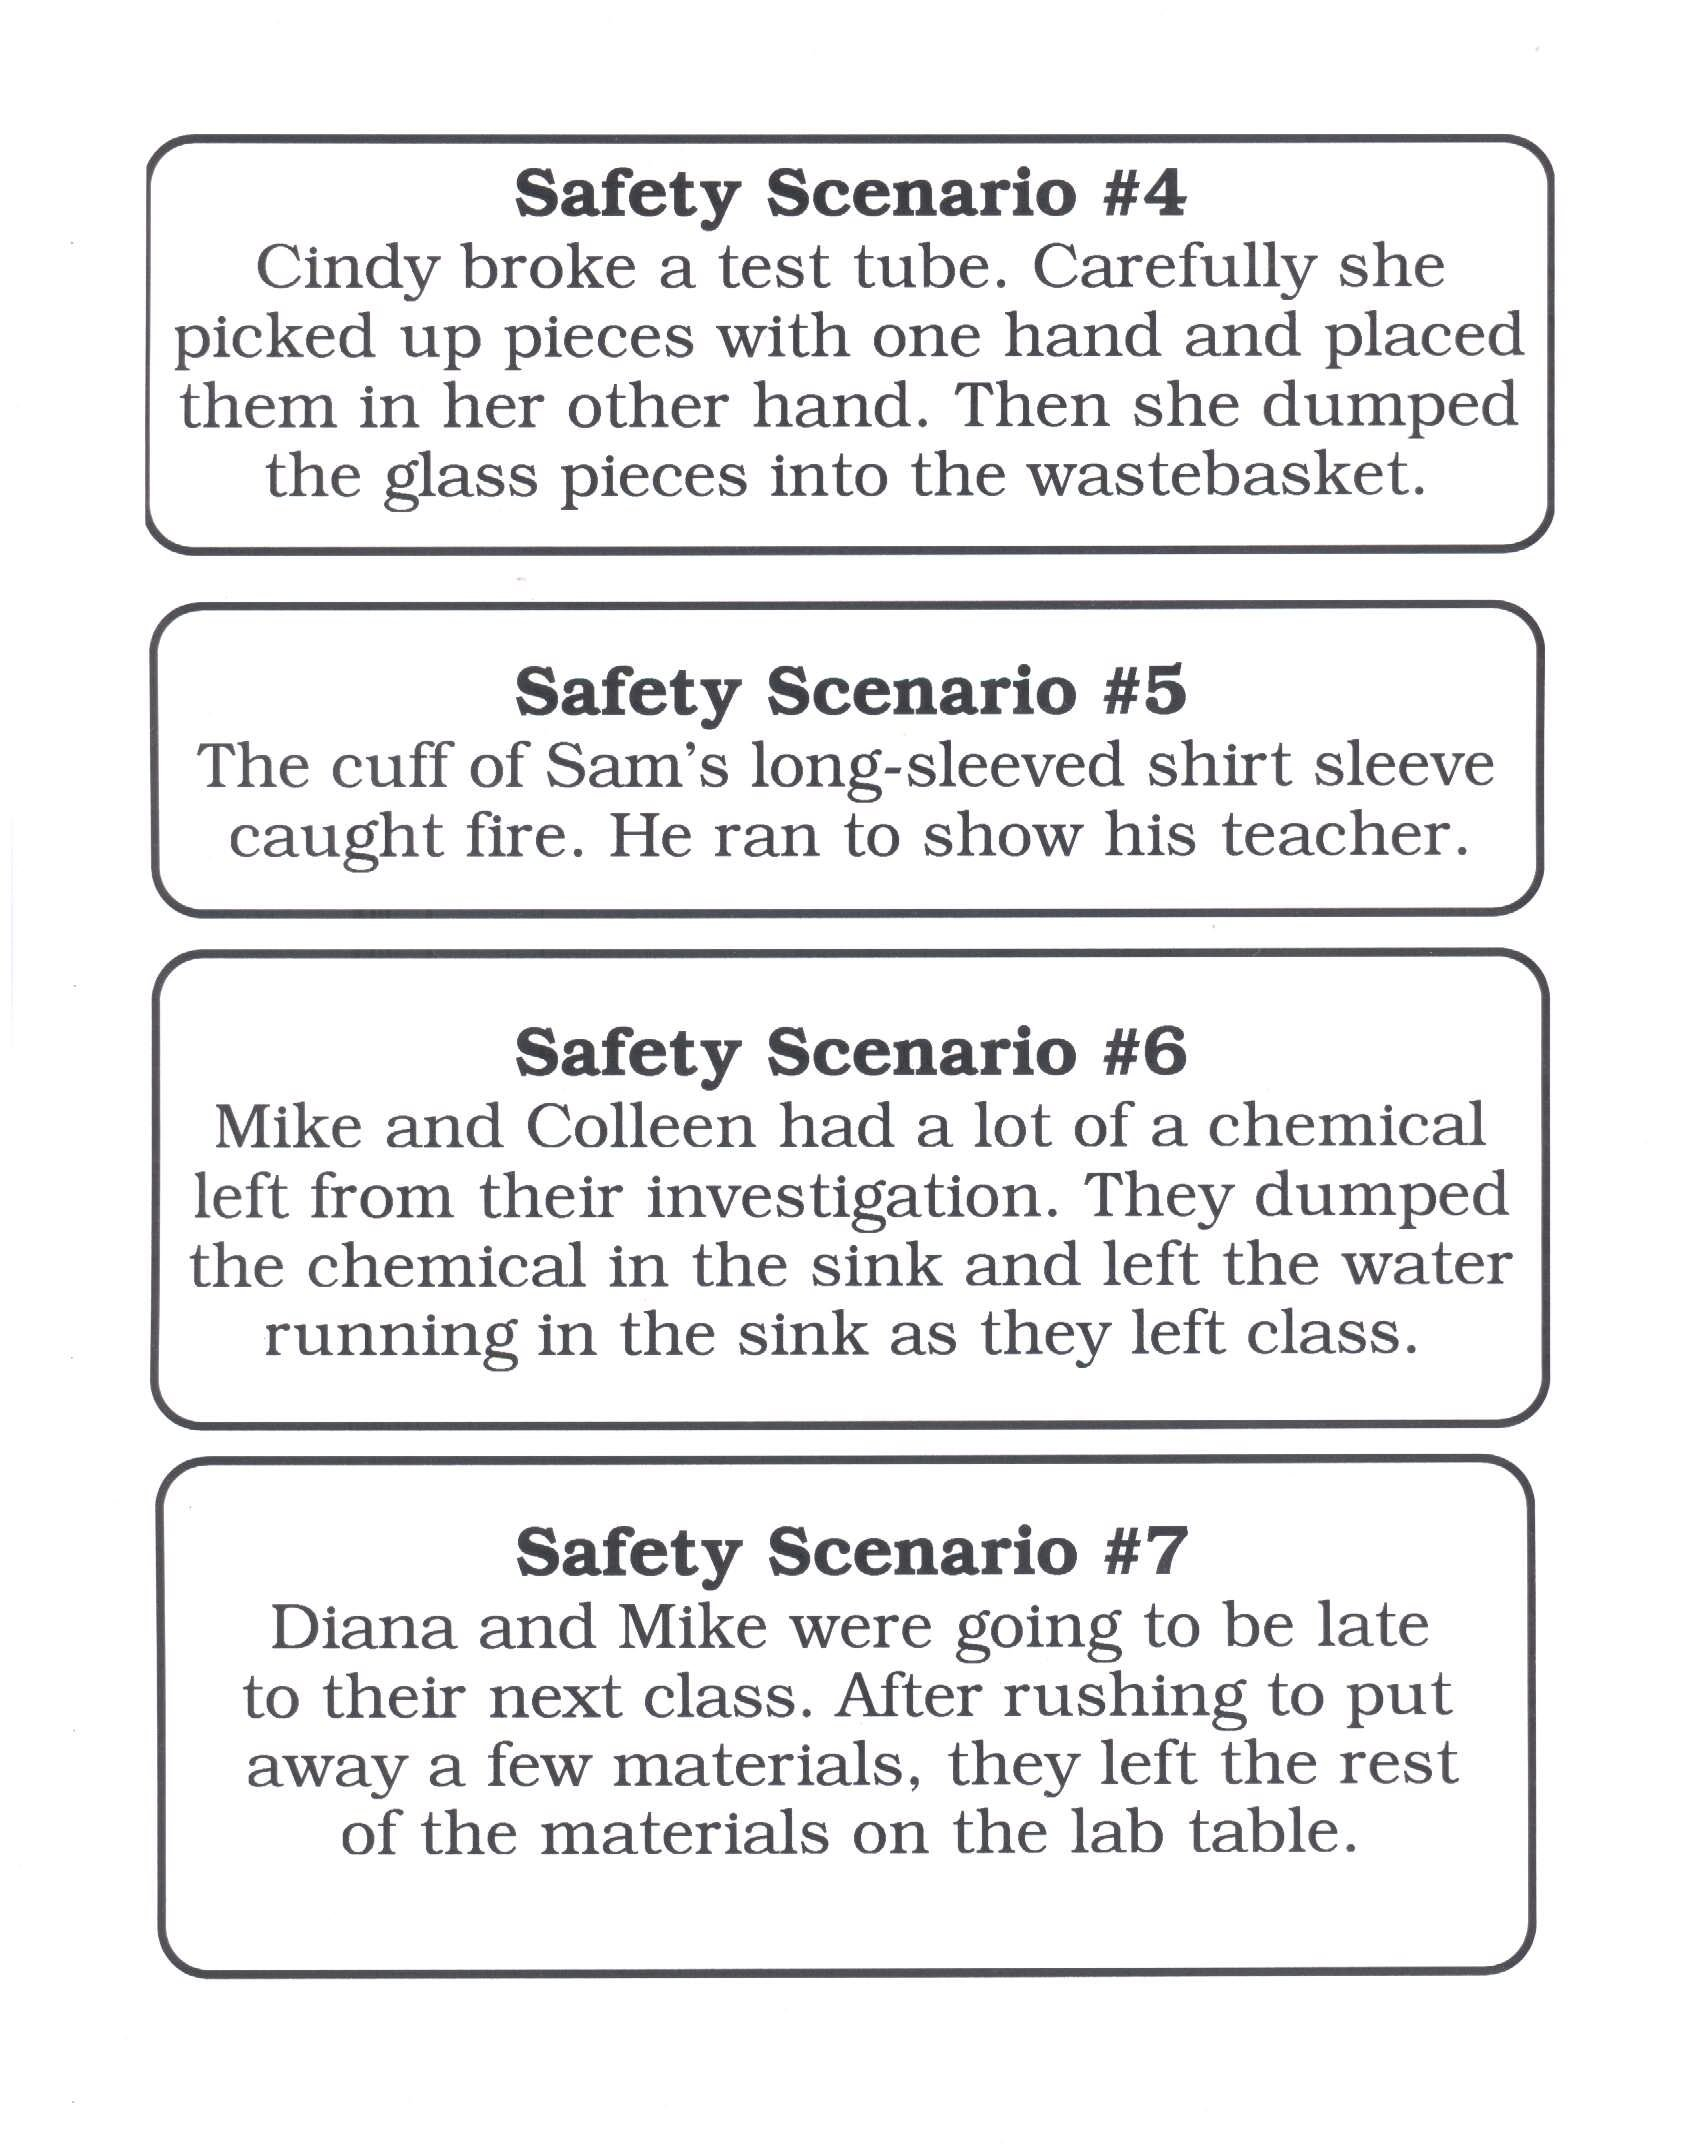 Lab Safety Scenarios Worksheet Answers